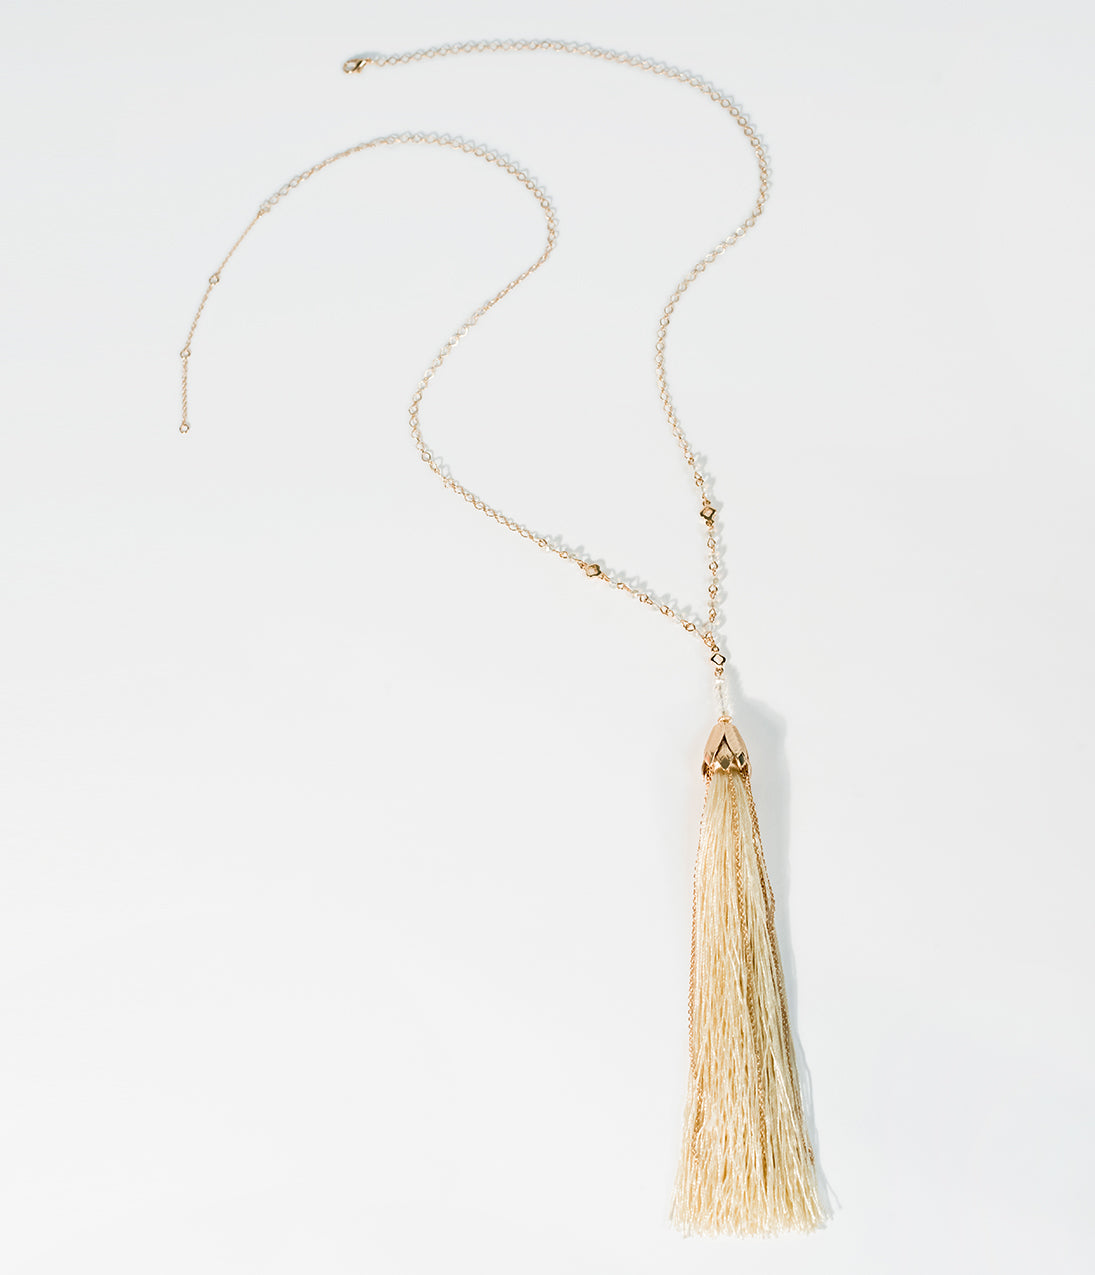 1920s Gatsby Jewelry- Flapper Earrings, Necklaces, Bracelets Deco Style Ivory  Gold Tassel Pendant Necklace $24.00 AT vintagedancer.com